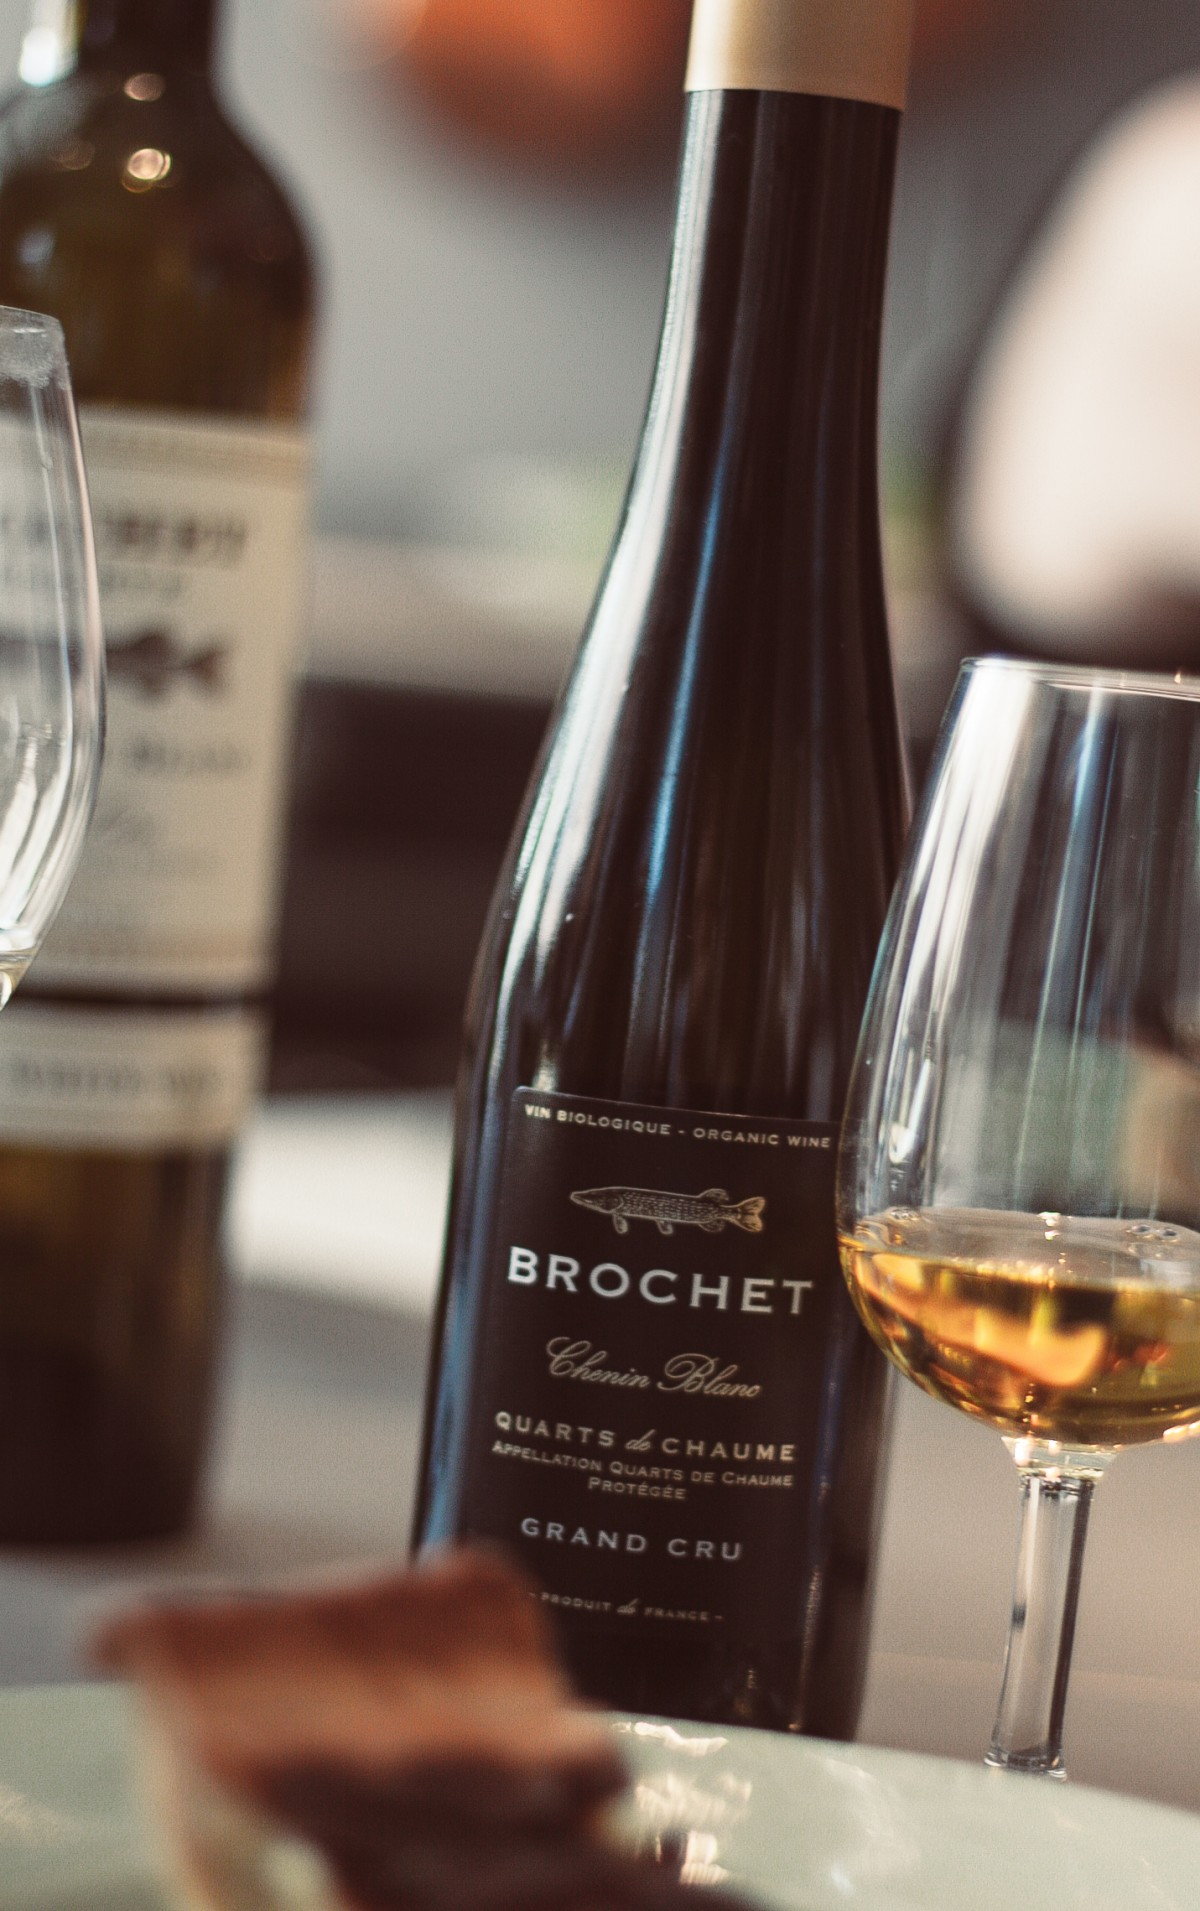 Brochet Quarts de Chaume Grand Cru 2015